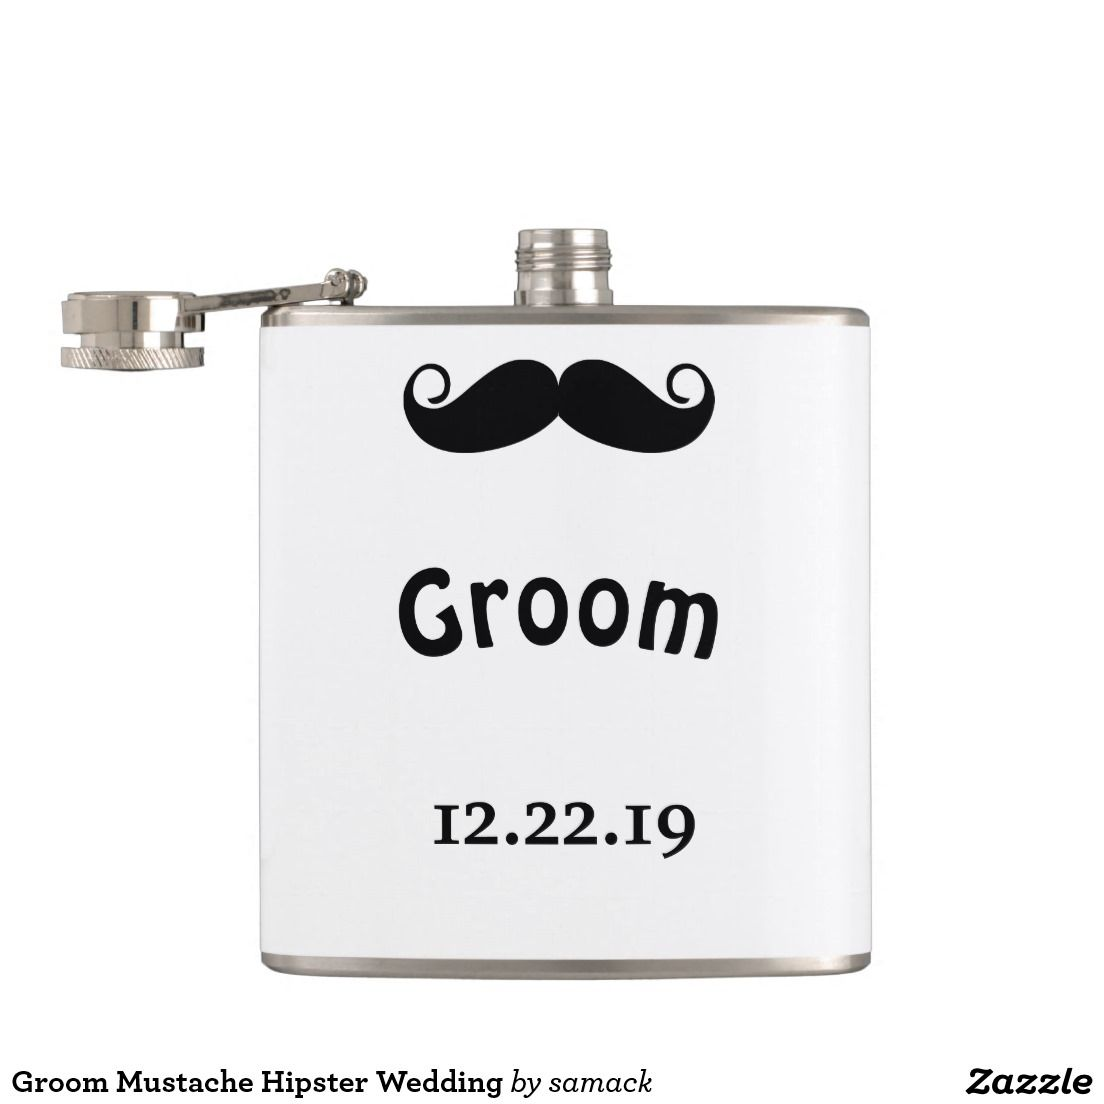 Groom Mustache Hipster Wedding Flask Hipster Wedding Grooms And